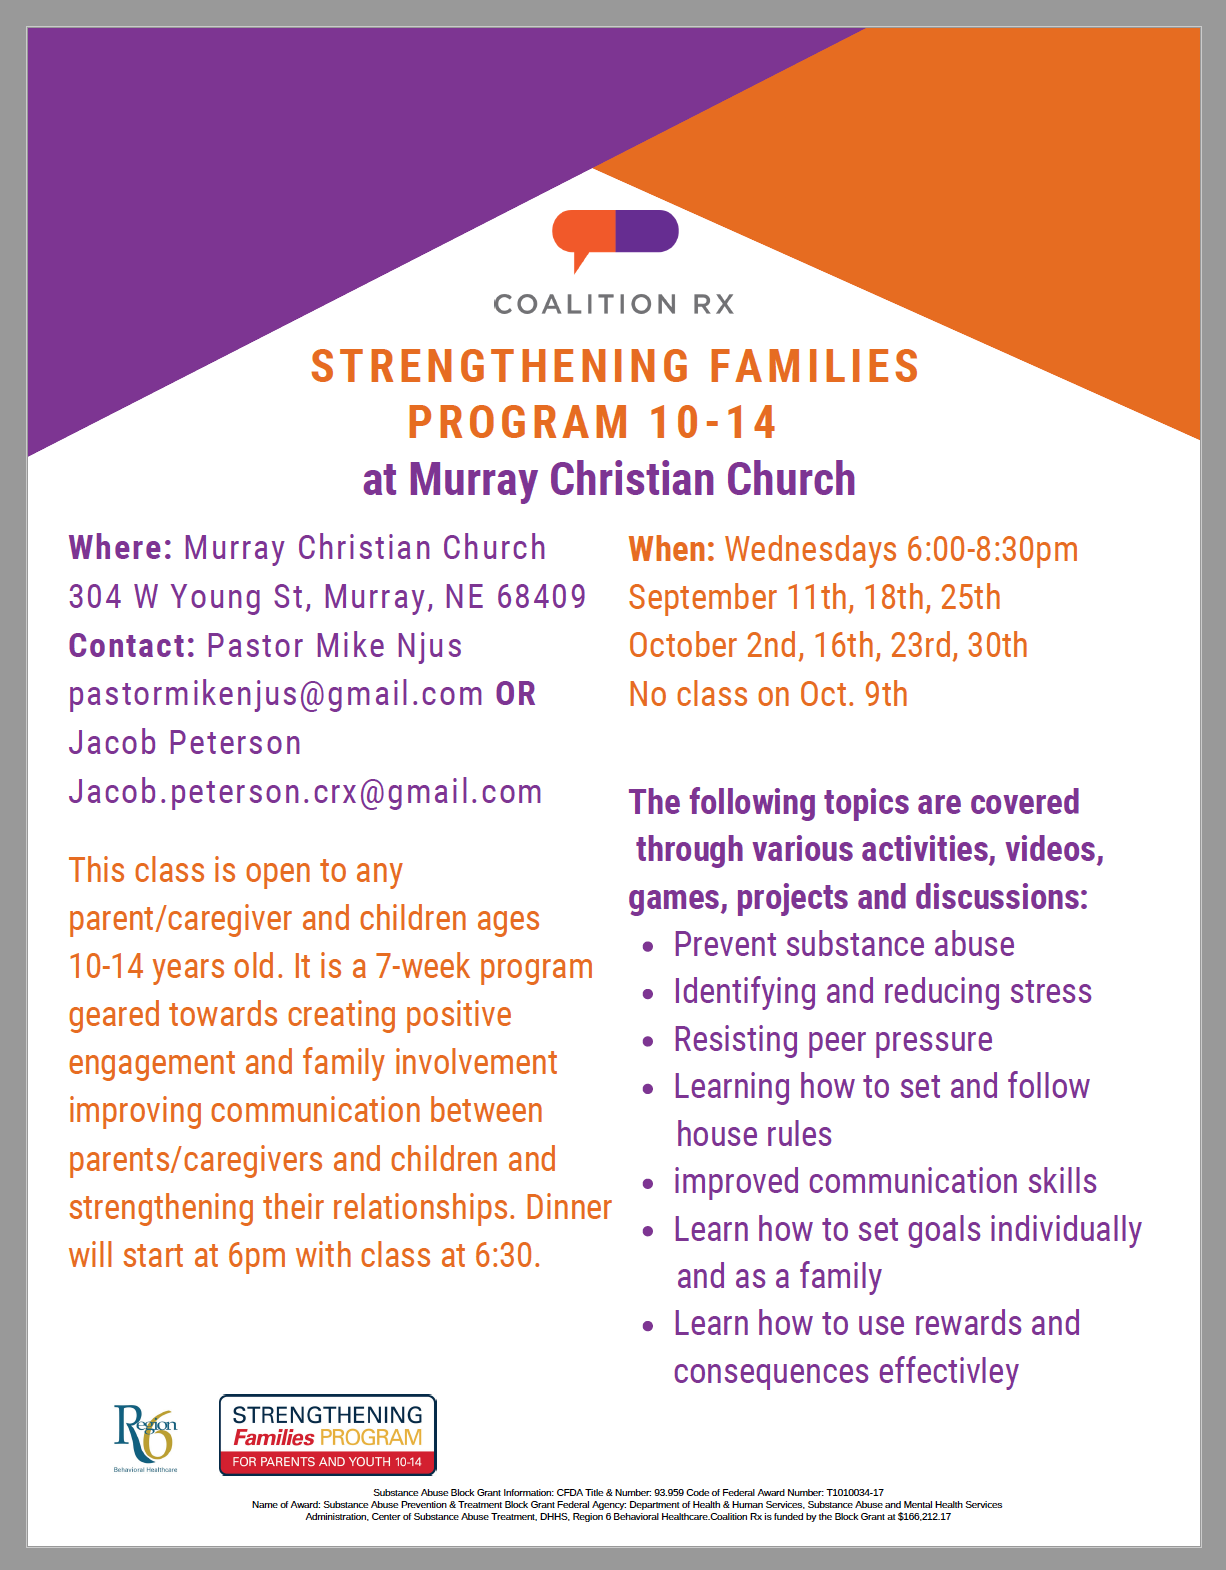 Strengthening Families 10-14 with Murray Christian Church